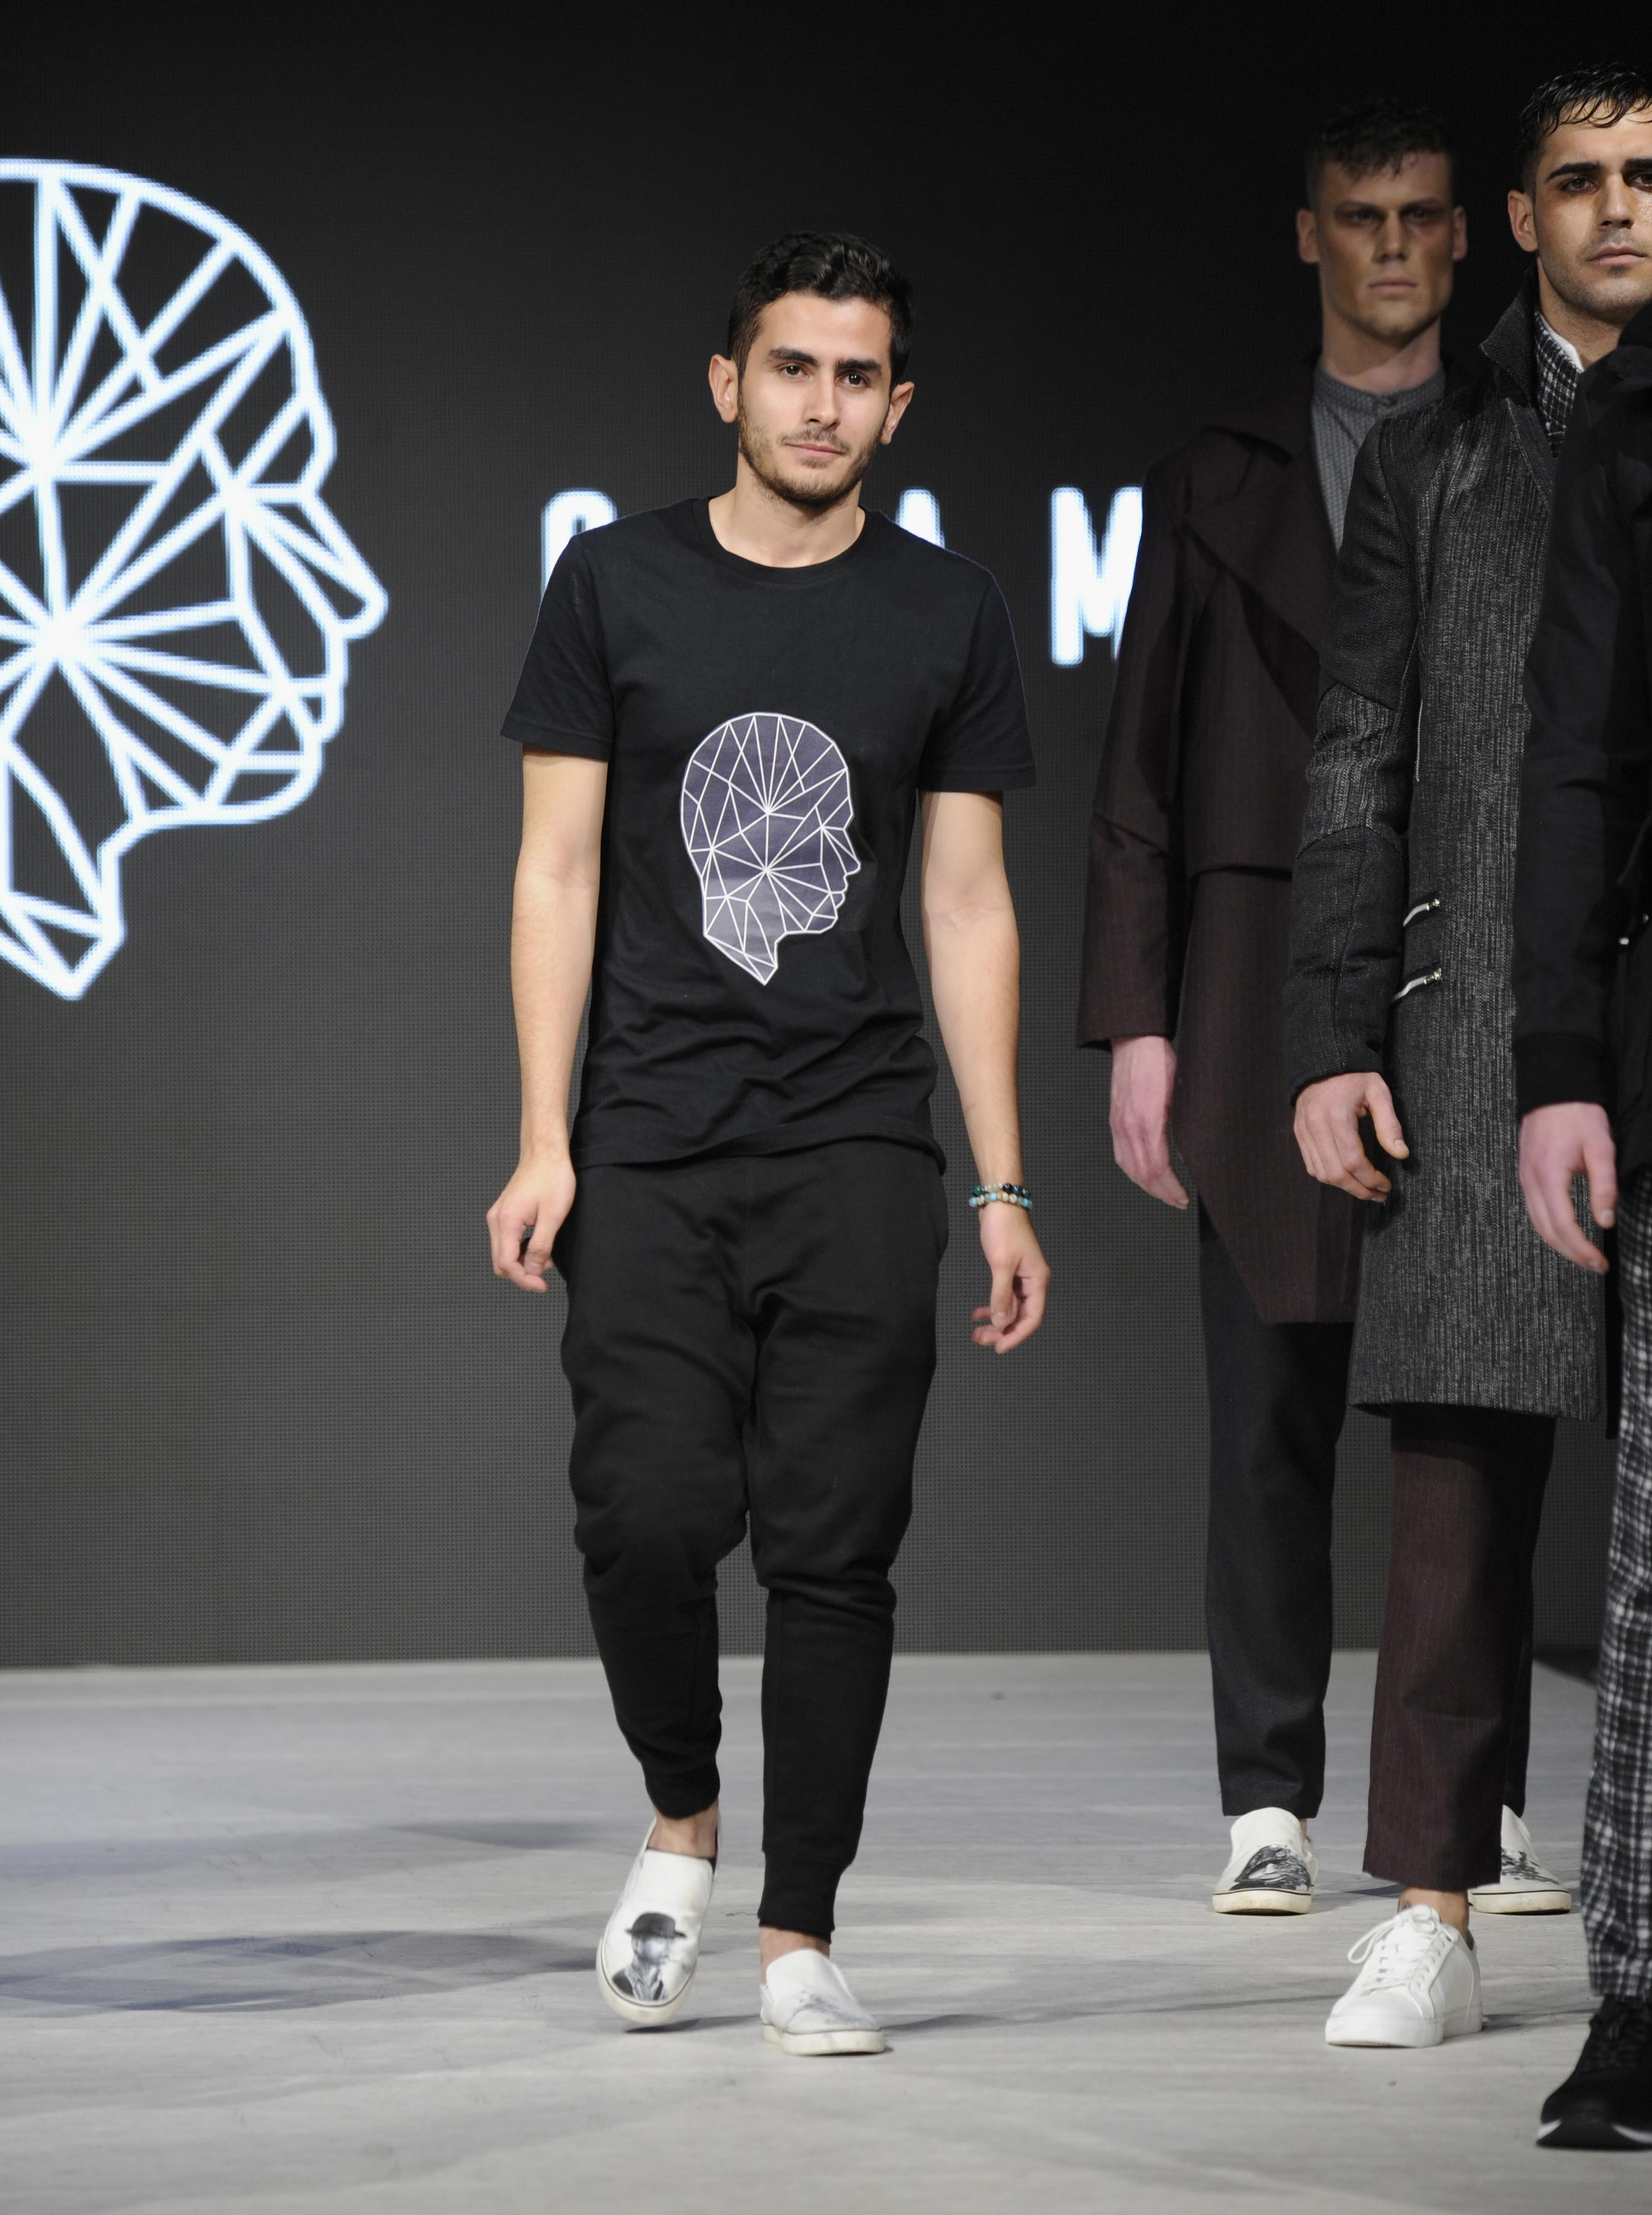 VANCOUVER, BC - MARCH 23:  Designer Stefano Giammattei walks the runway at Vancouver Fashion Week Fall/Winter 2017 at Chinese Cultural Centre of Greater Vancouver on March 23, 2017 in Vancouver, Canada.  (Photo by Arun Nevader/WireImage) *** Local Caption *** Stefano Giammattei